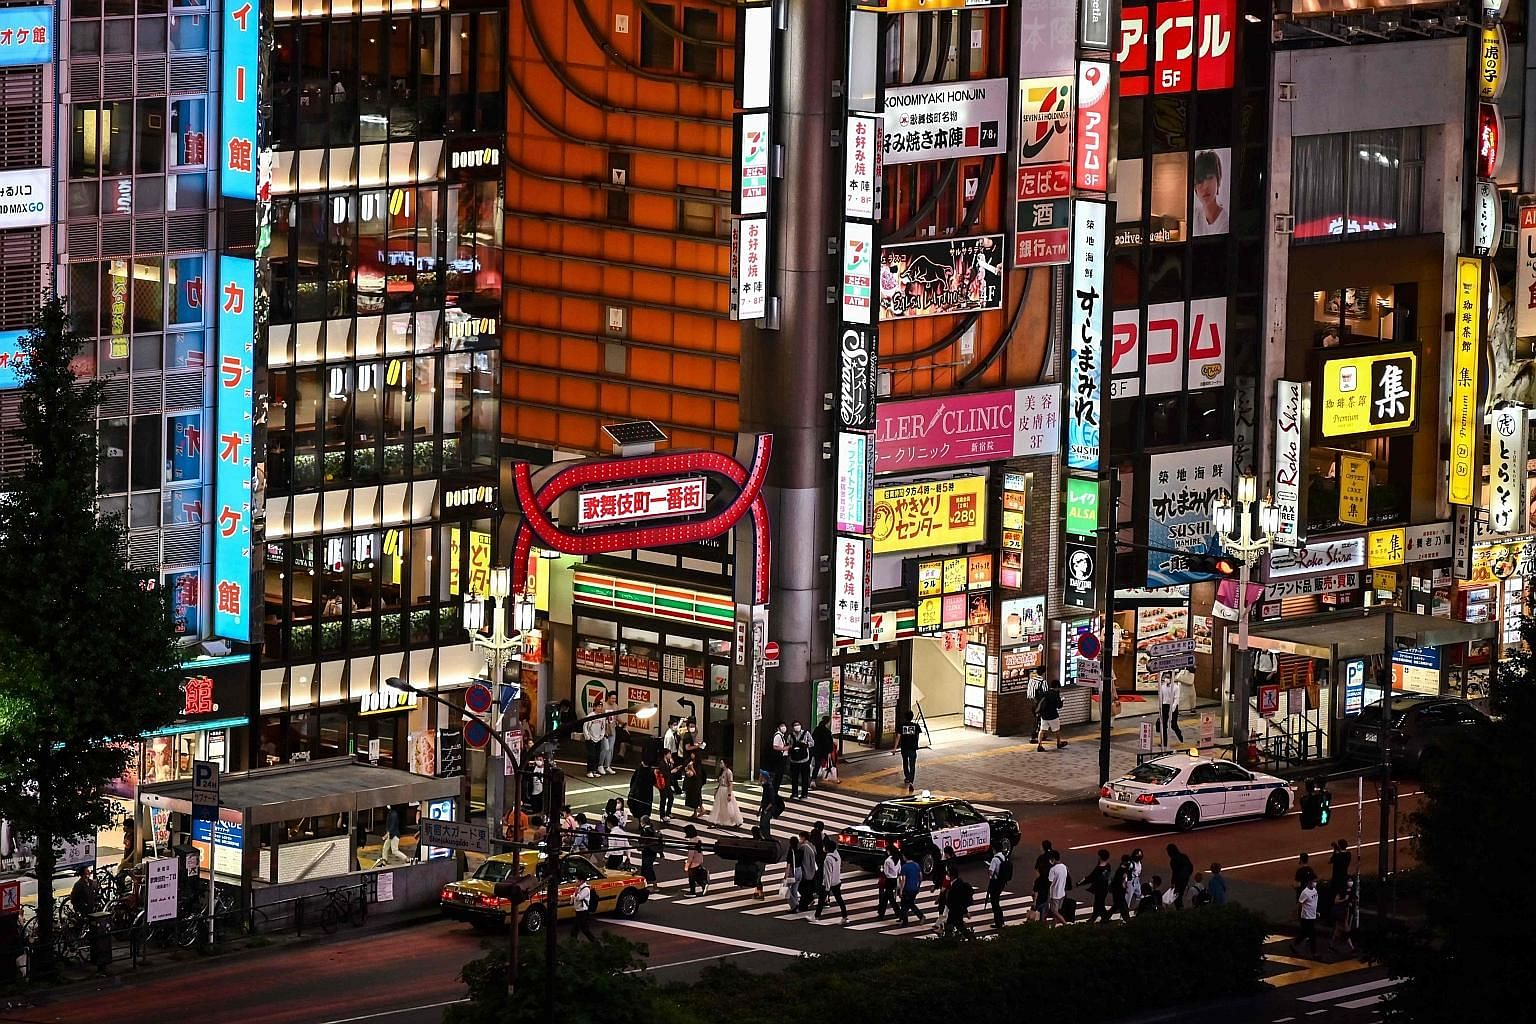 The entertainment district of Kabukicho in Tokyo on June 24. The Tokyo metropolitan government will give $6,500 to nightclubs if they close for more than 10 days.